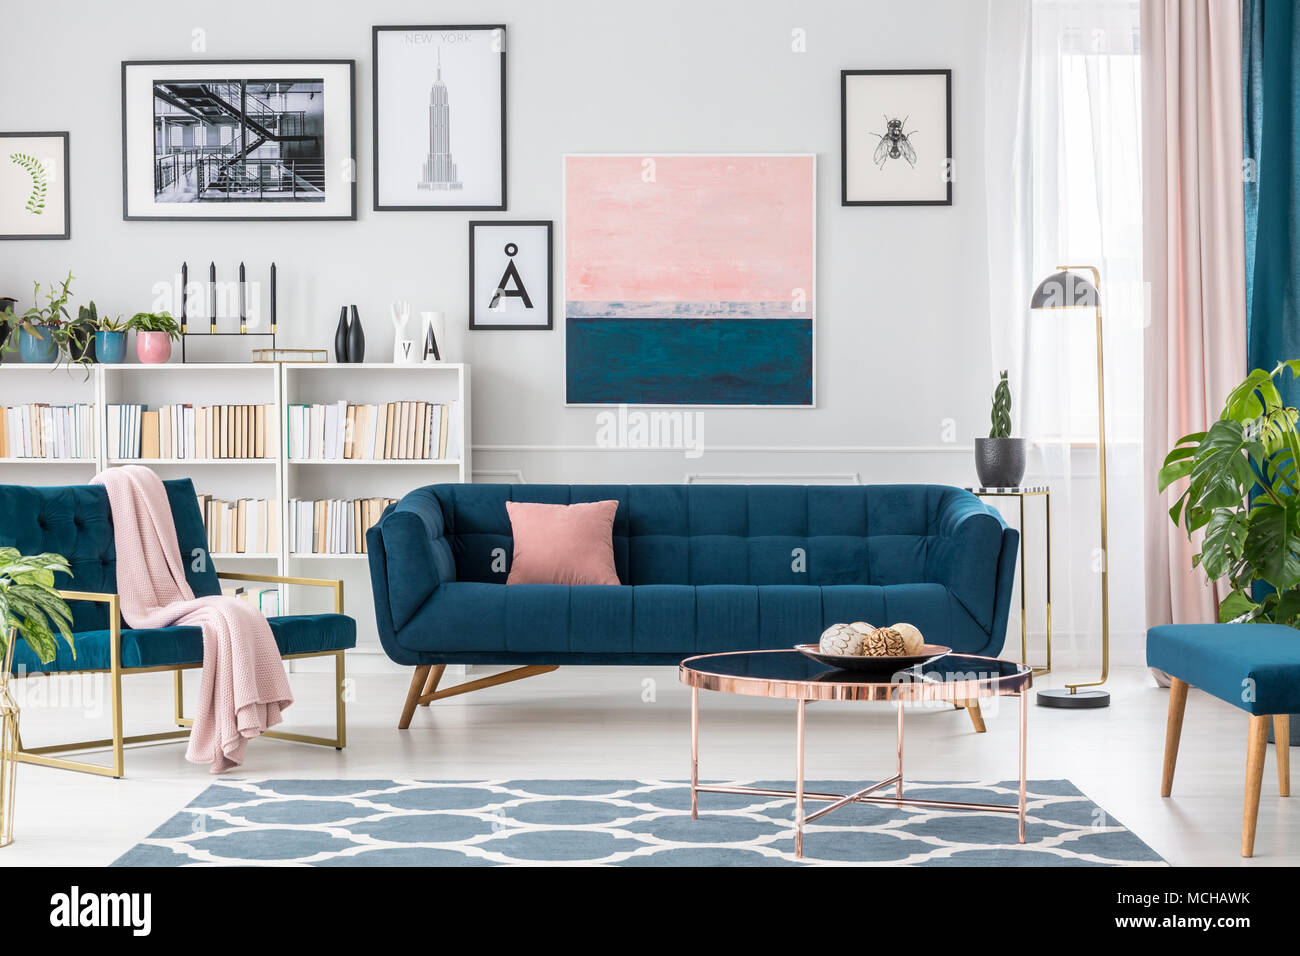 Modern Living Room Interior With Blue Sofa Rug Art Collection And Pink Details Stock Photo Alamy